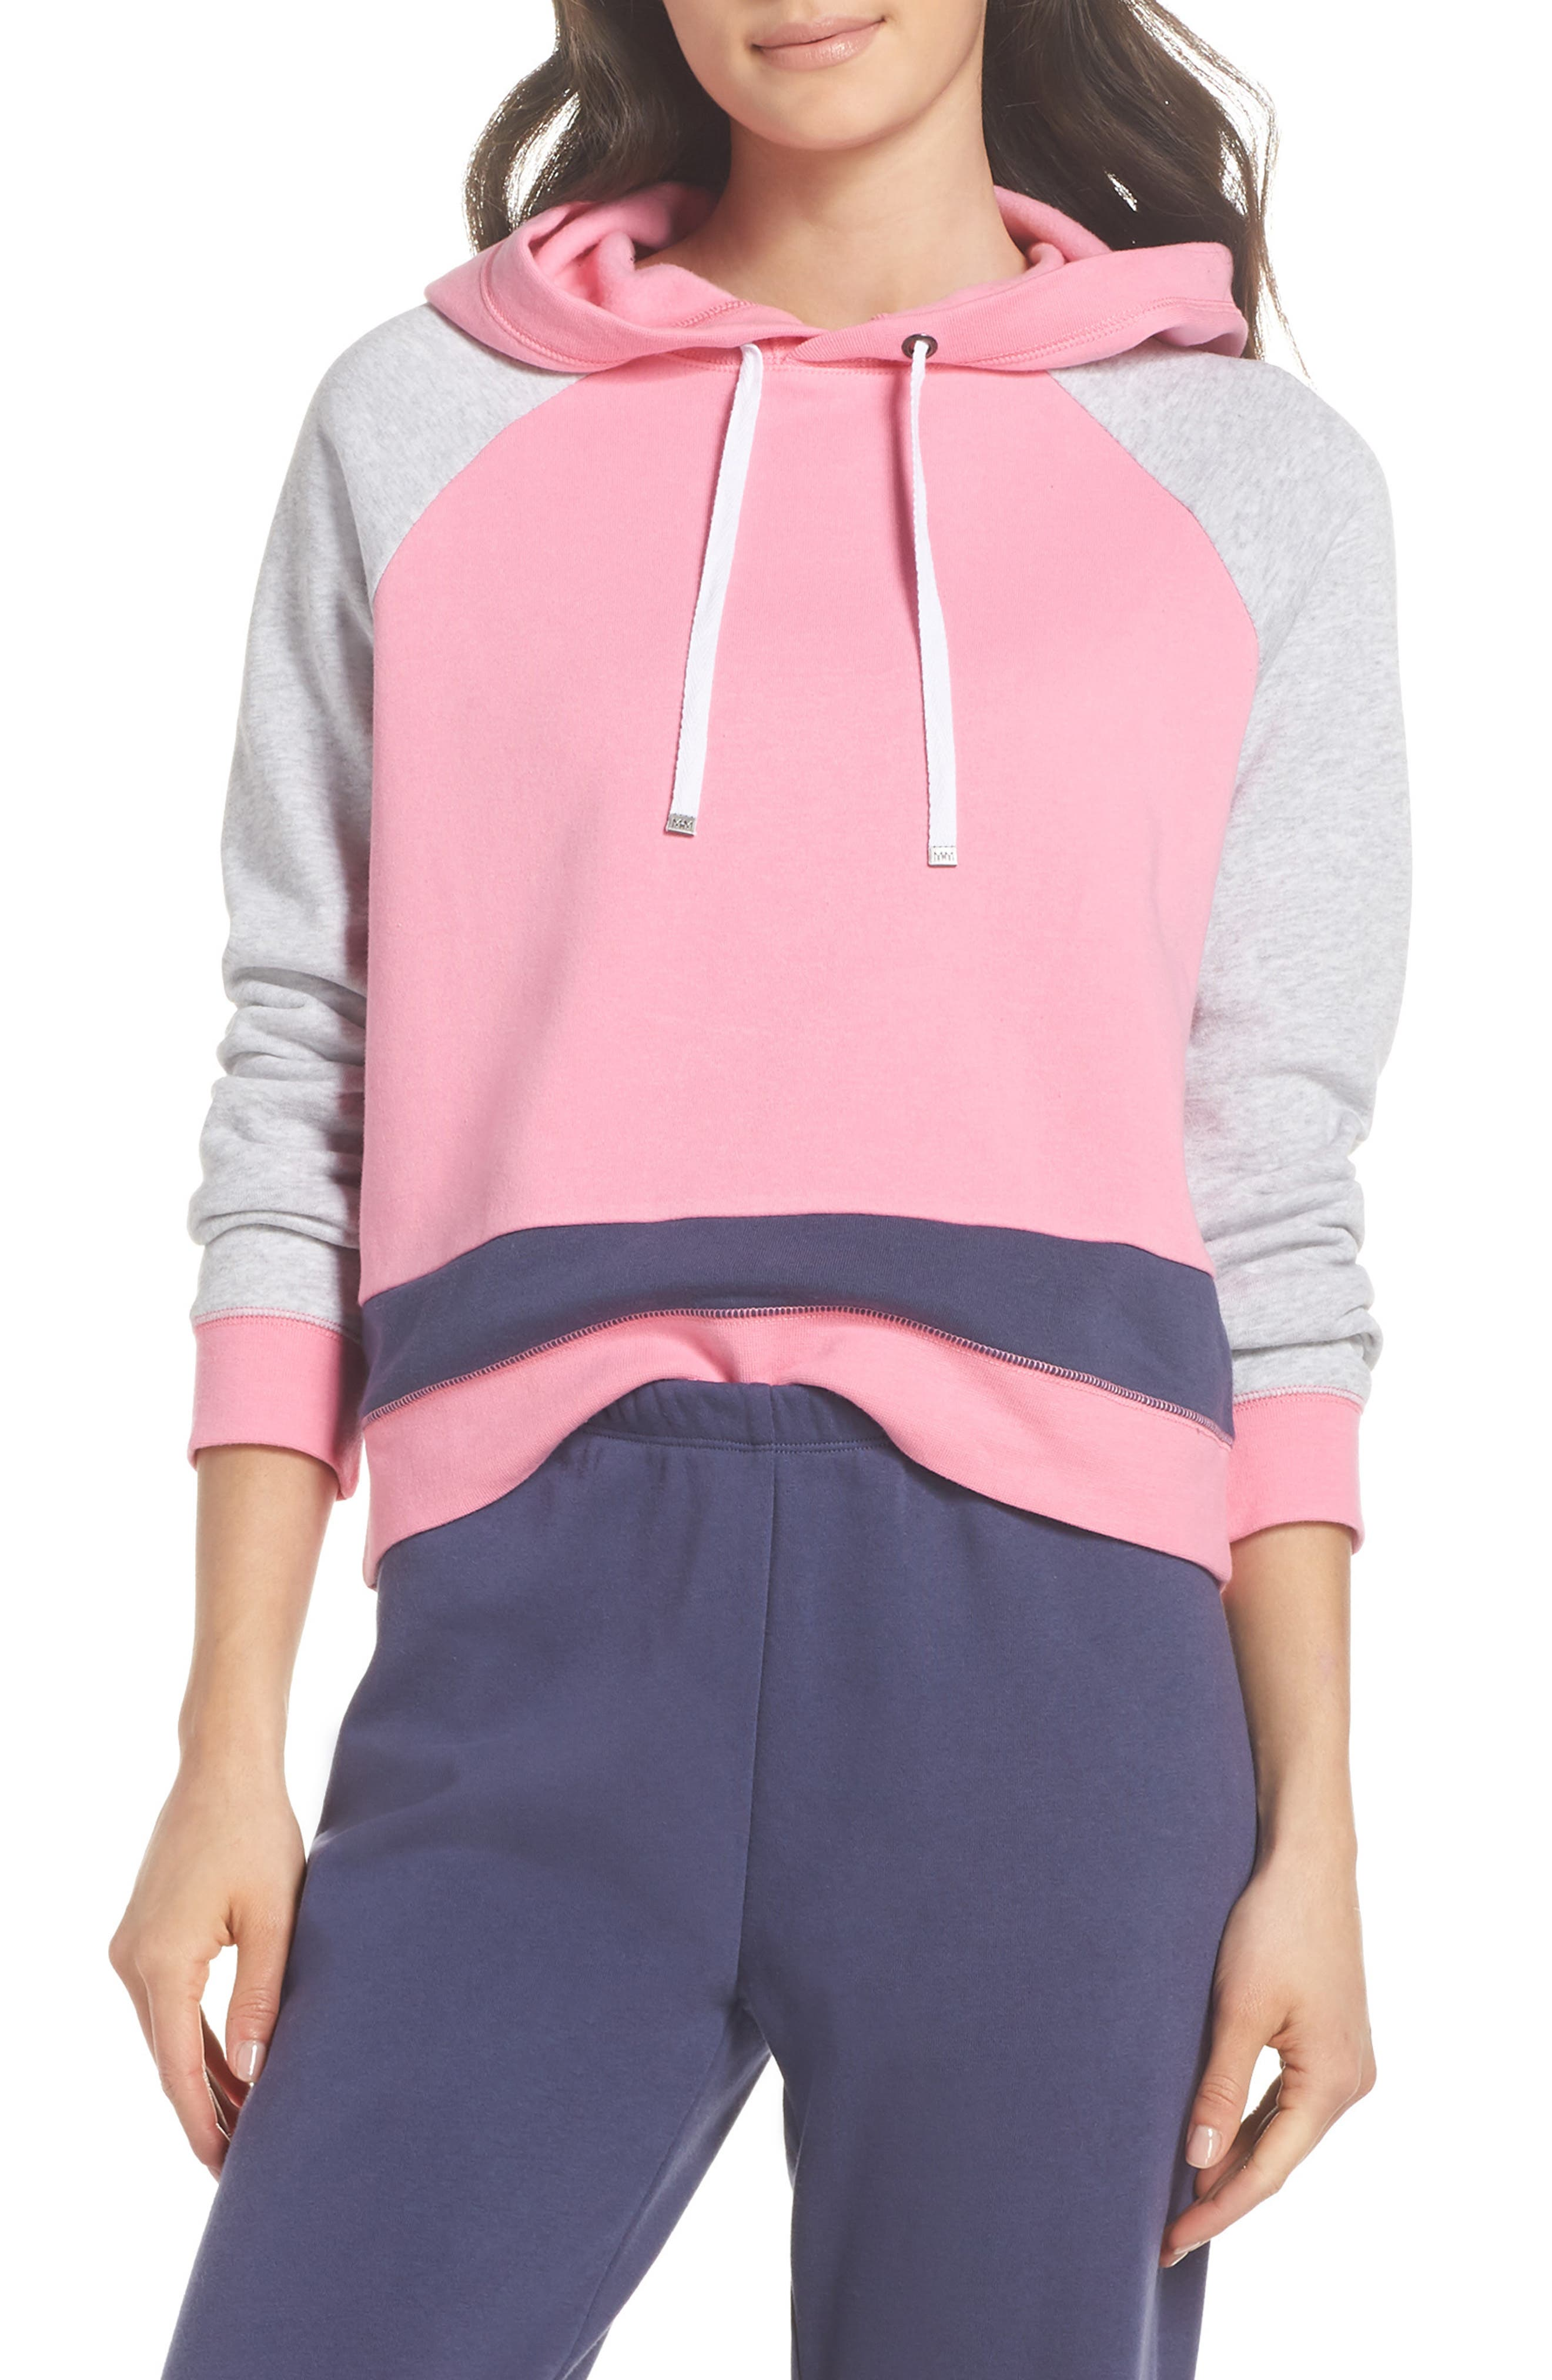 Sleepy Fleece Hoodie,                             Main thumbnail 1, color,                             660